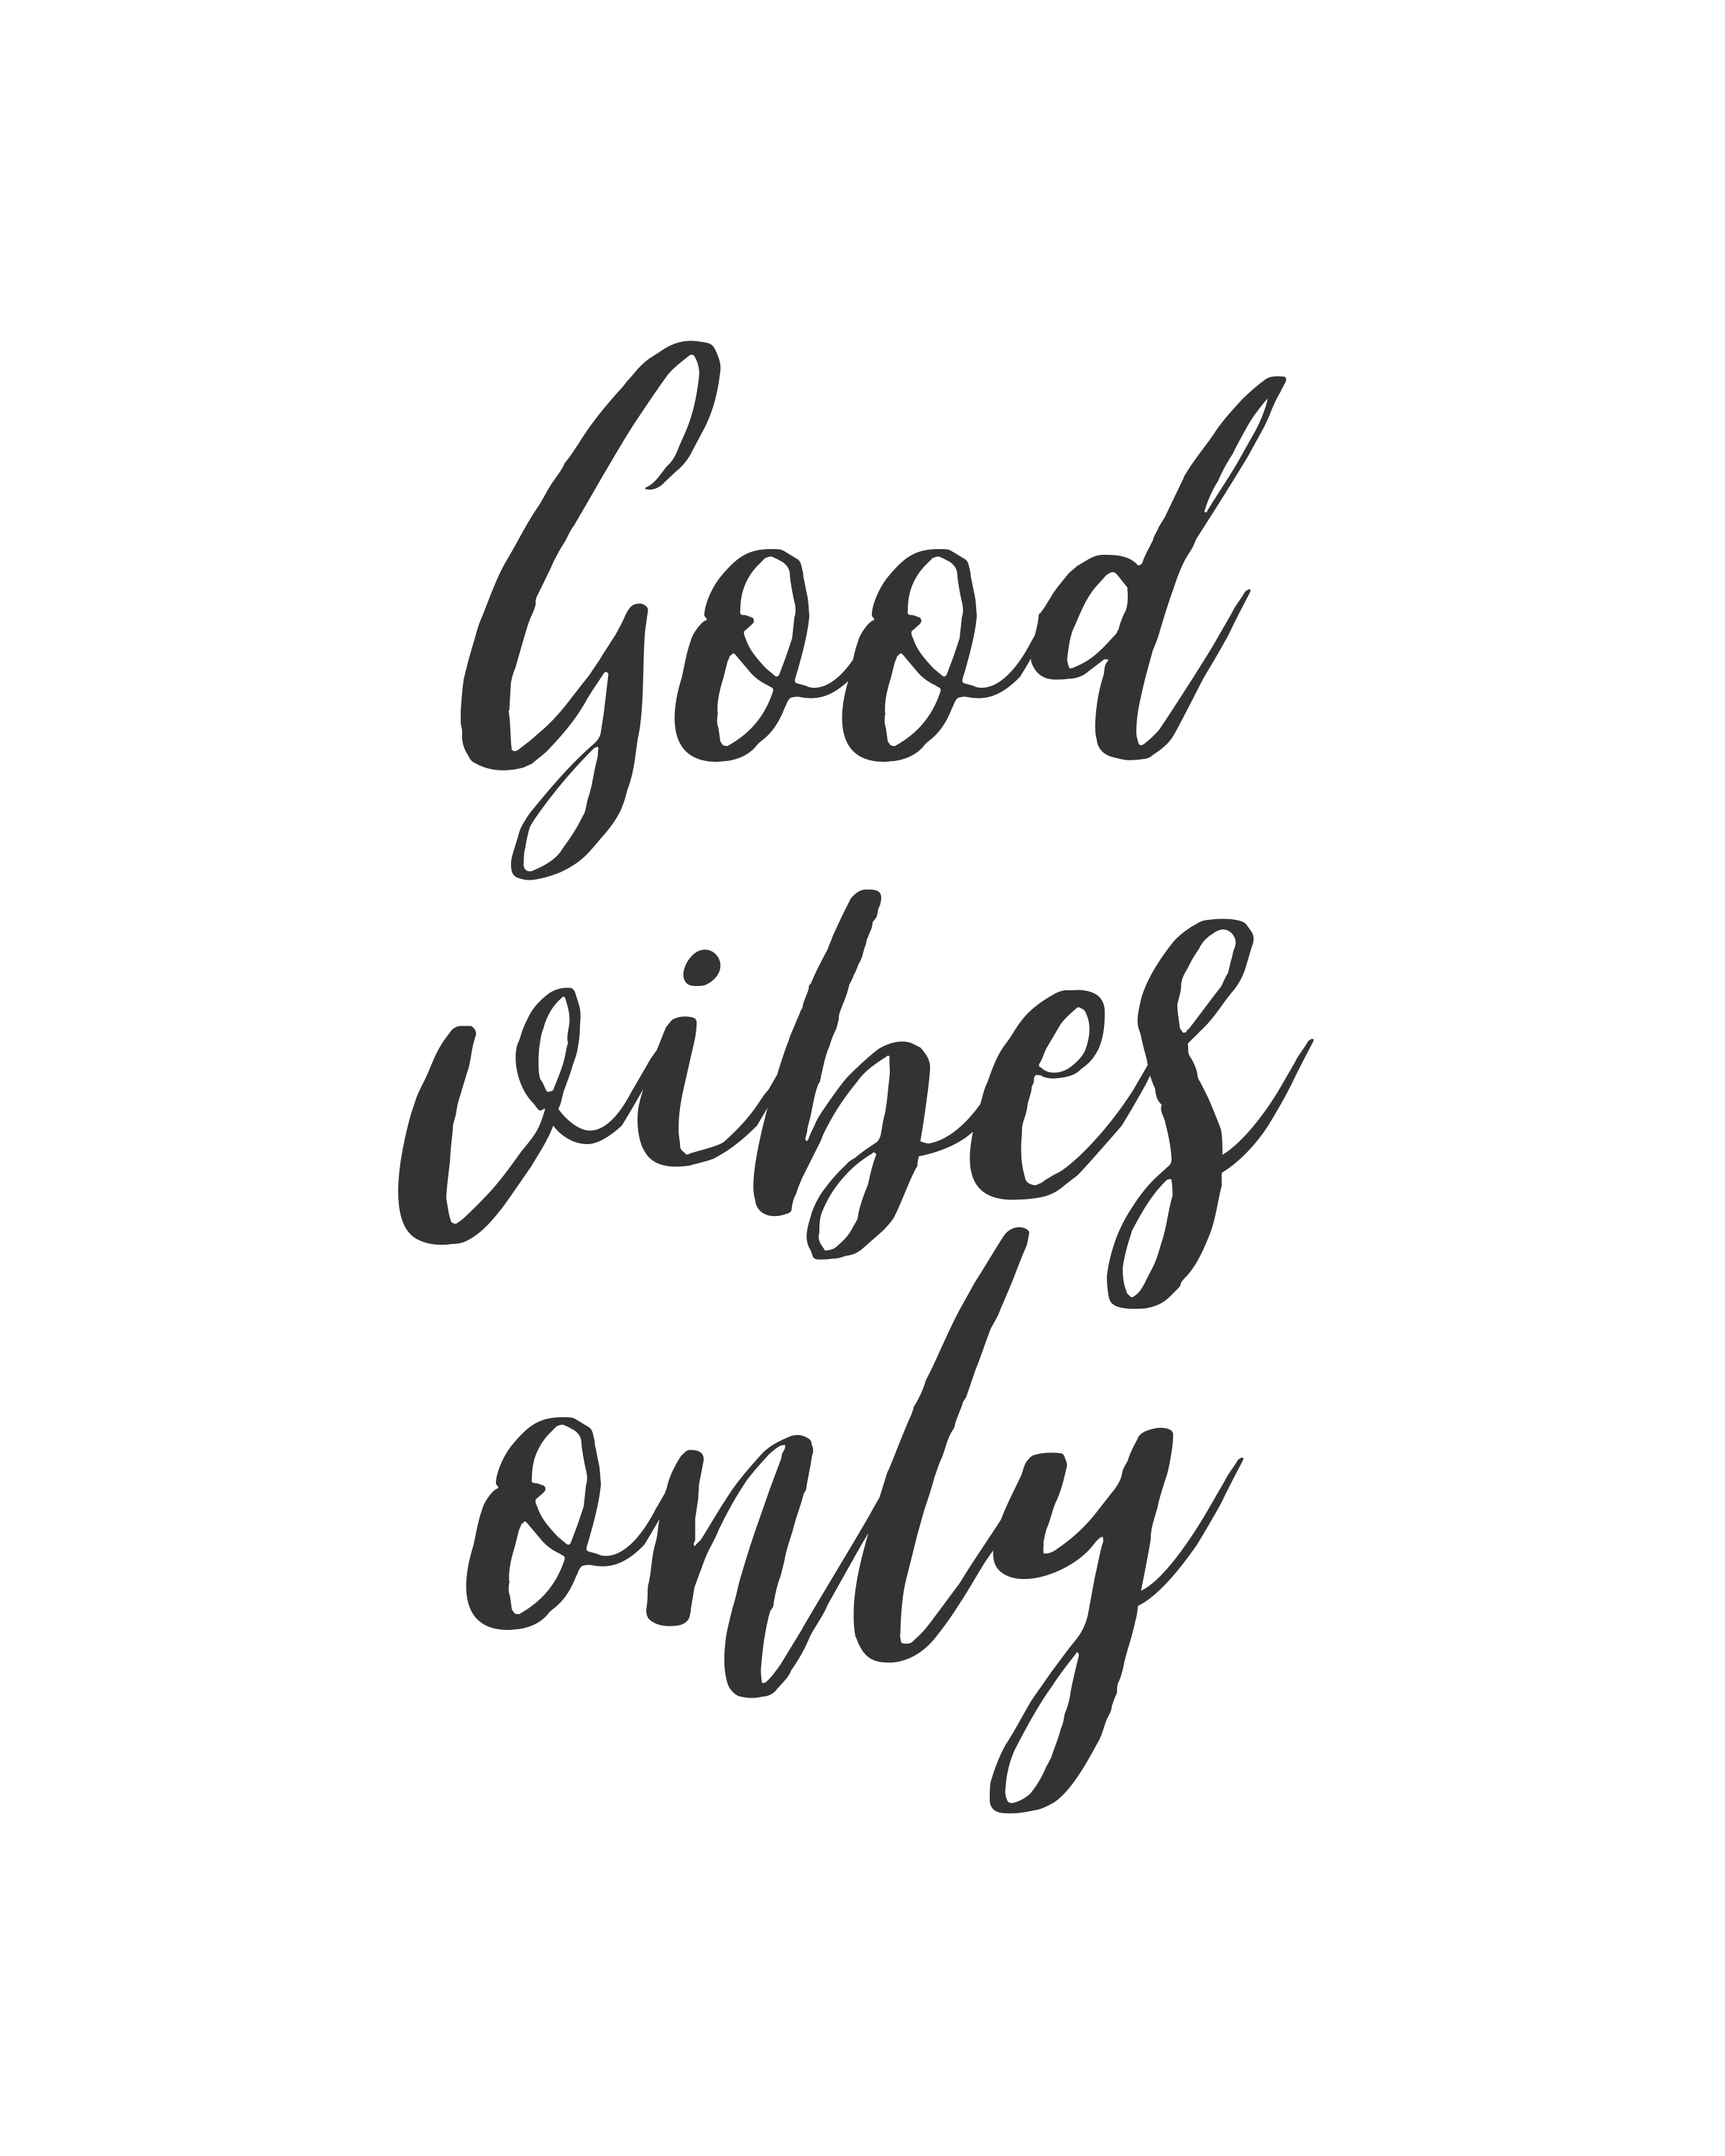 Motivational inspirational quote life poster picture print GOOD VIBES ONLY